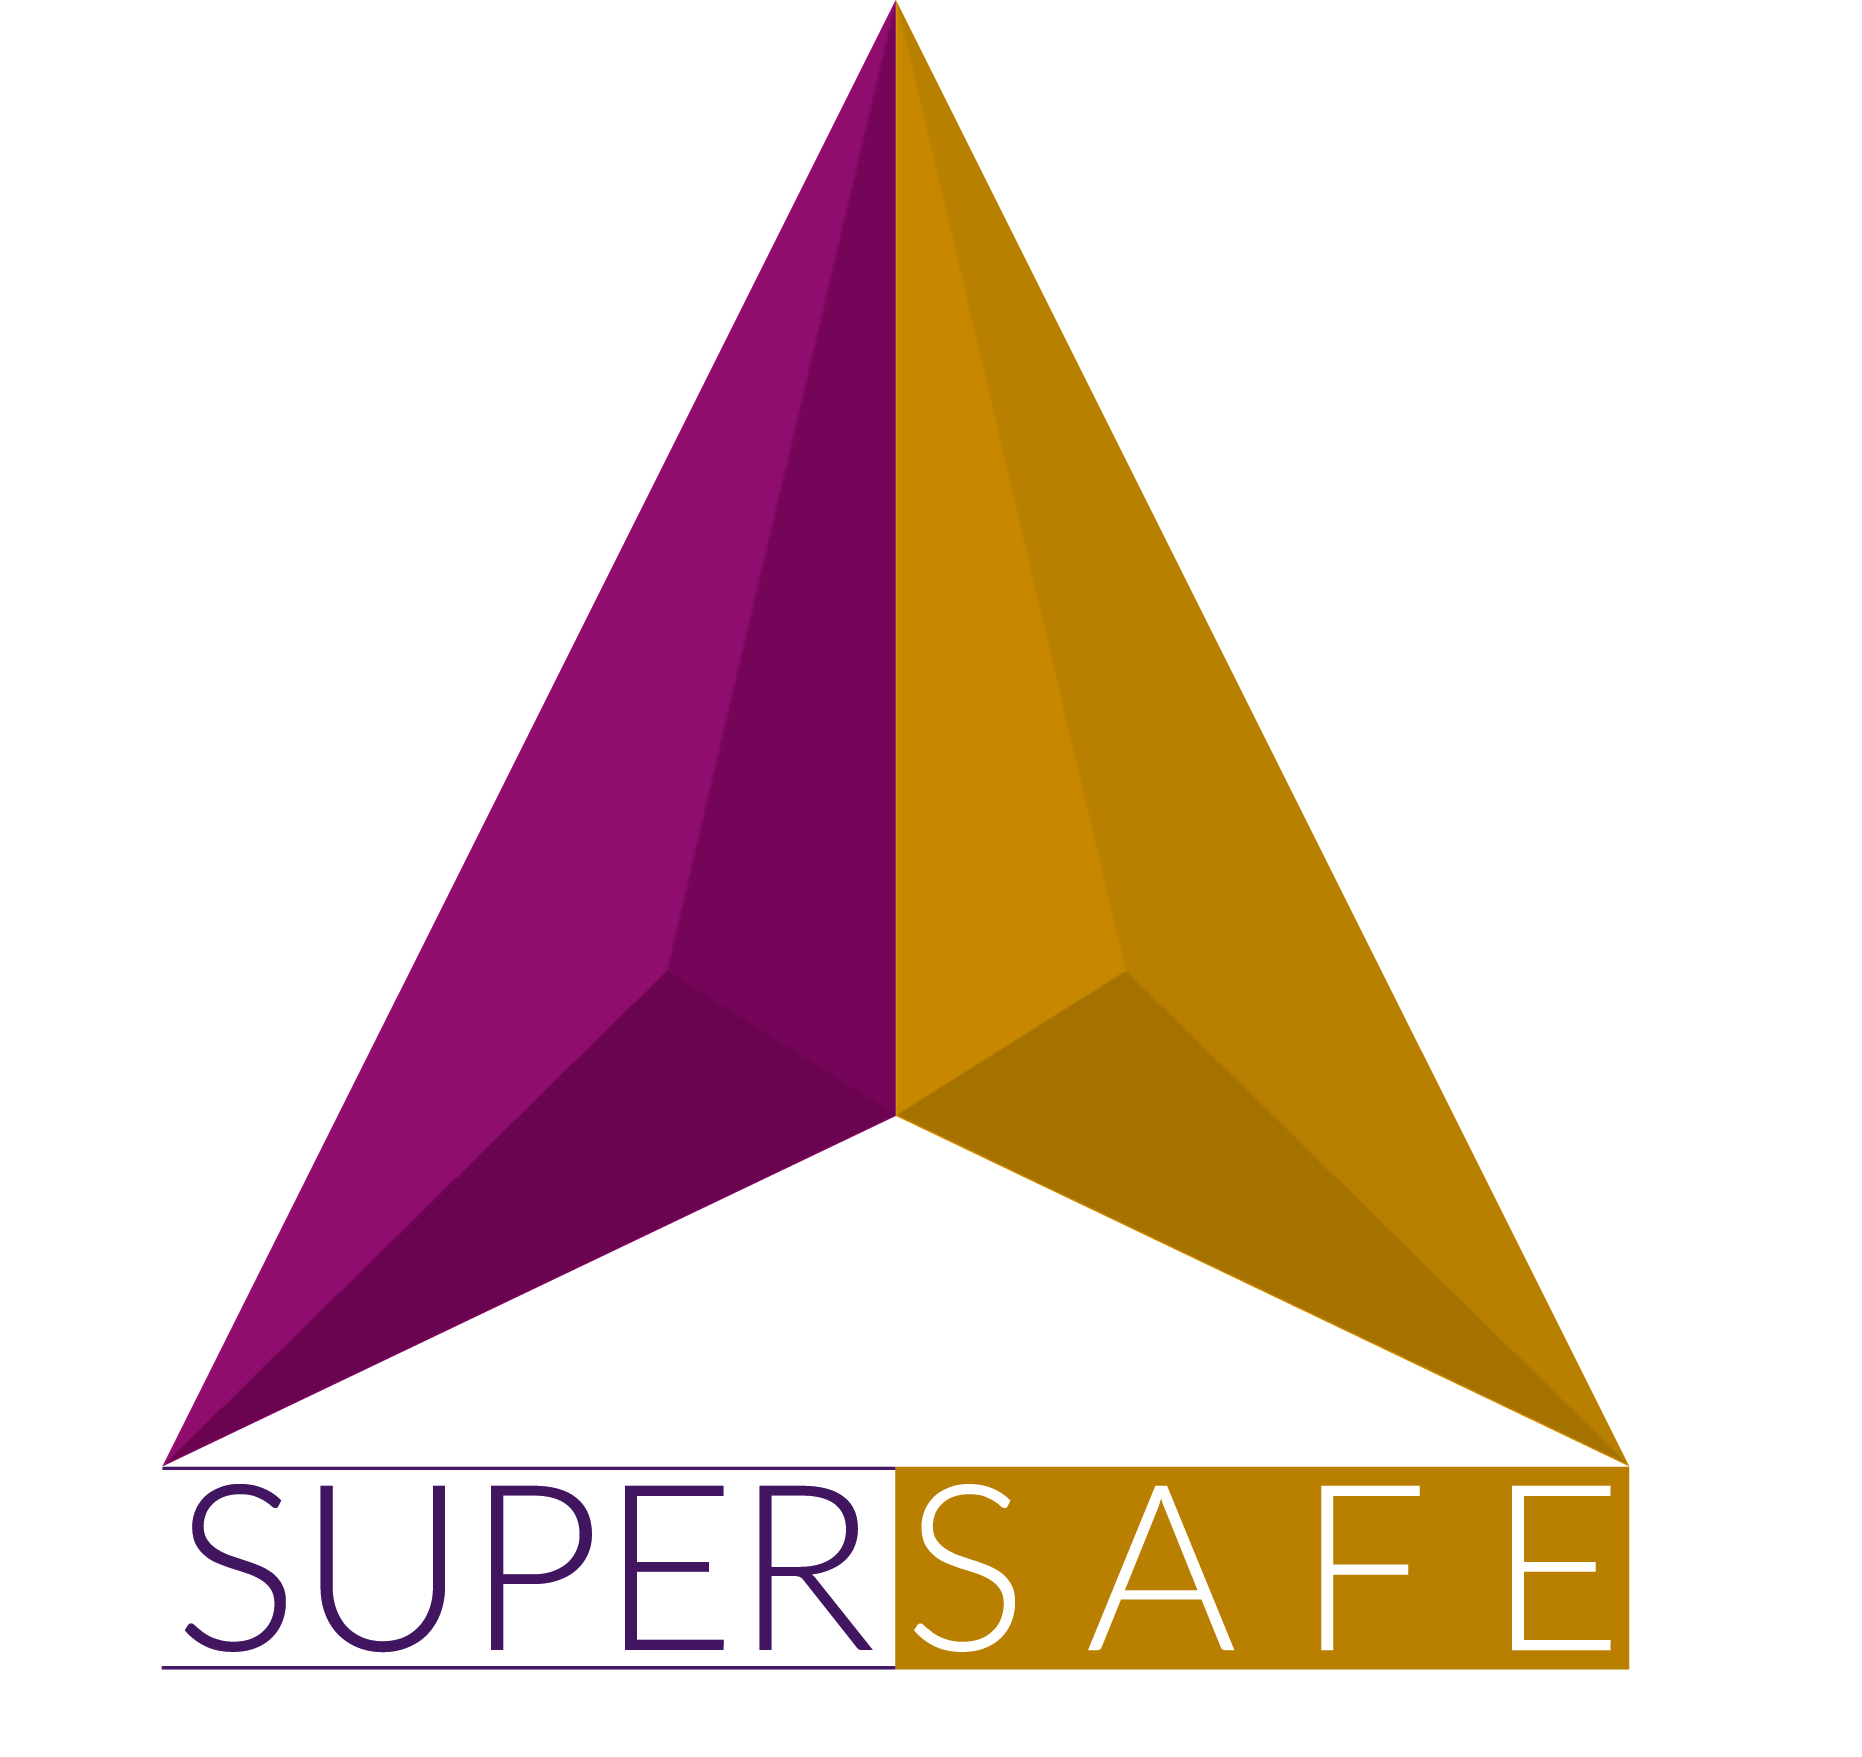 SuperSafe - Gps tracking device, mobile & vehicle tracking system software supplier